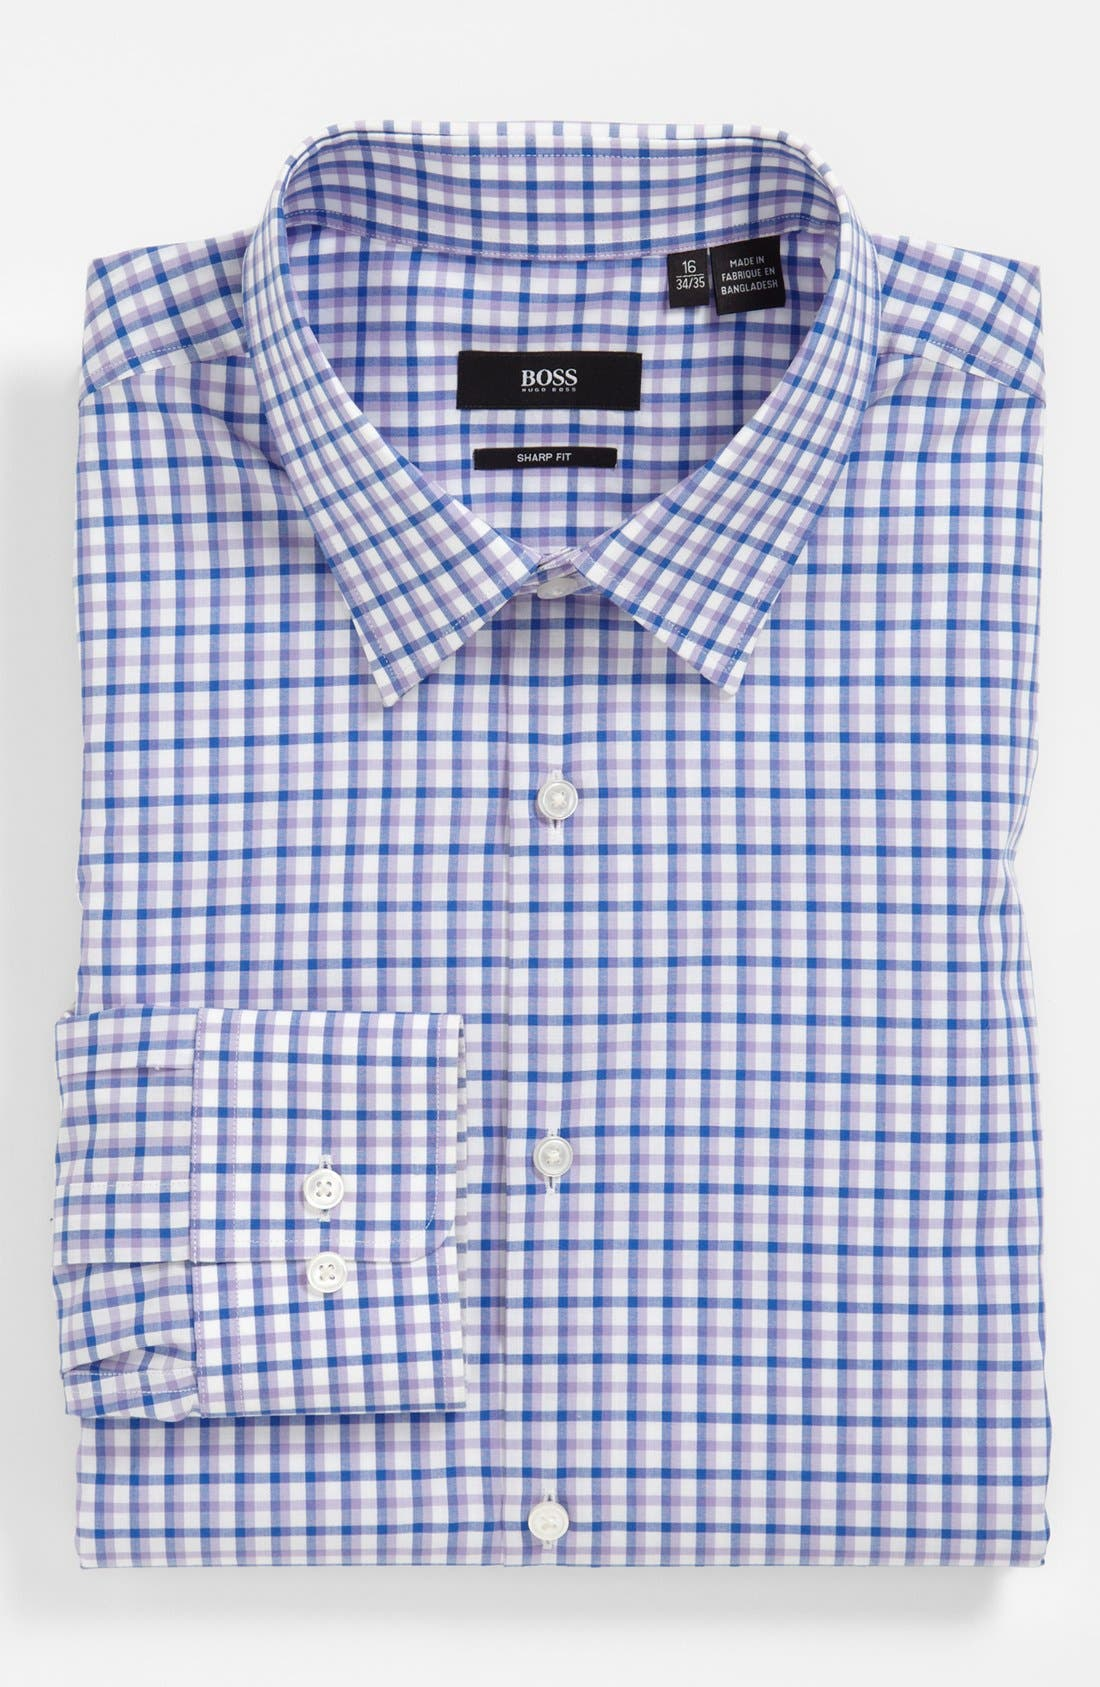 BOSS HUGO BOSS 'Marlow' Sharp Fit Dress Shirt, Main, color, 530